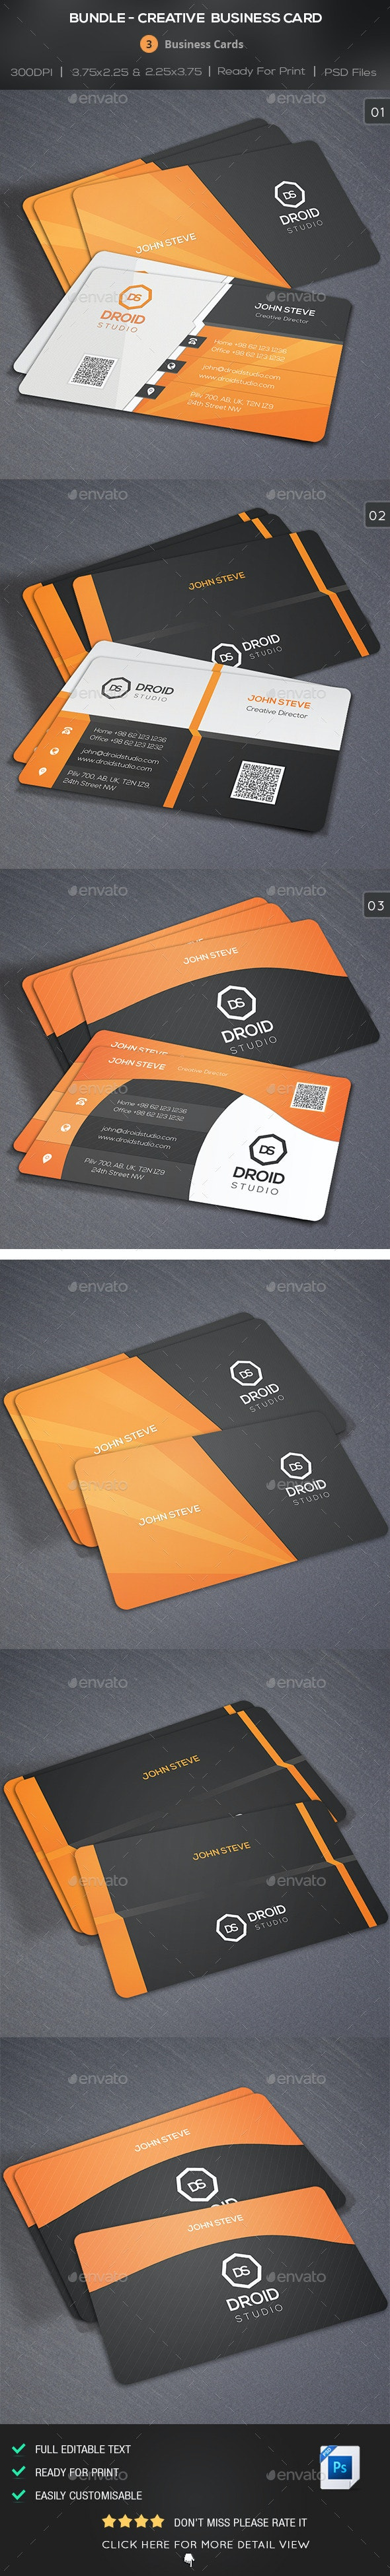 Bundle - Creative Business Card - Creative Business Cards